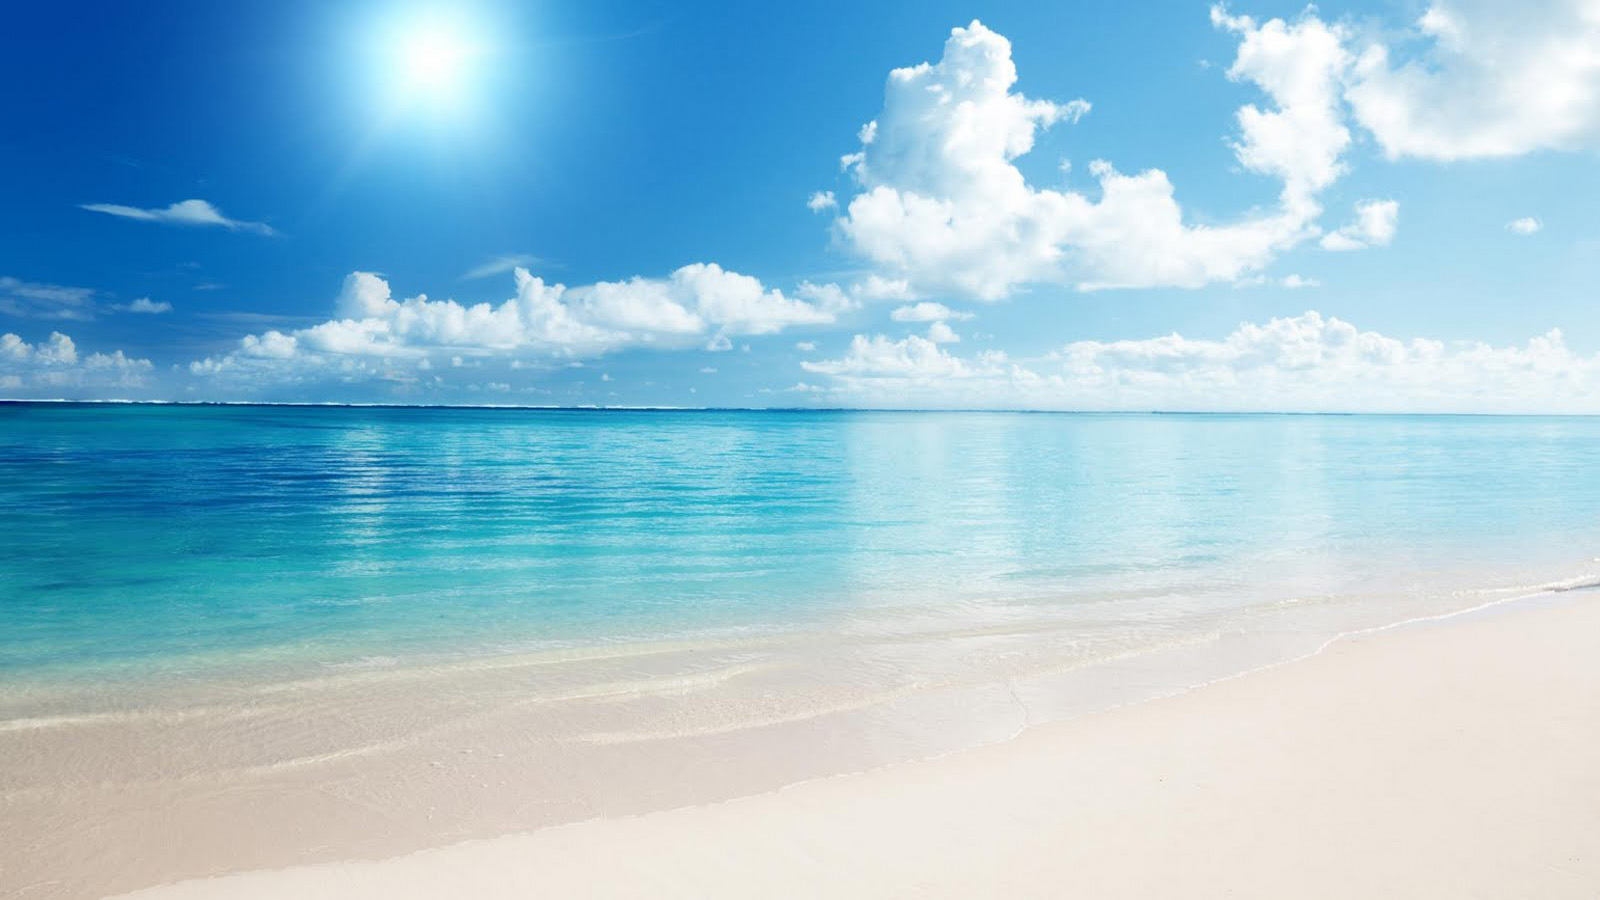 Beach-Backgrounds-Hd-Background-Screen-in-Nature-ID-com-wallpaper-wp3402955